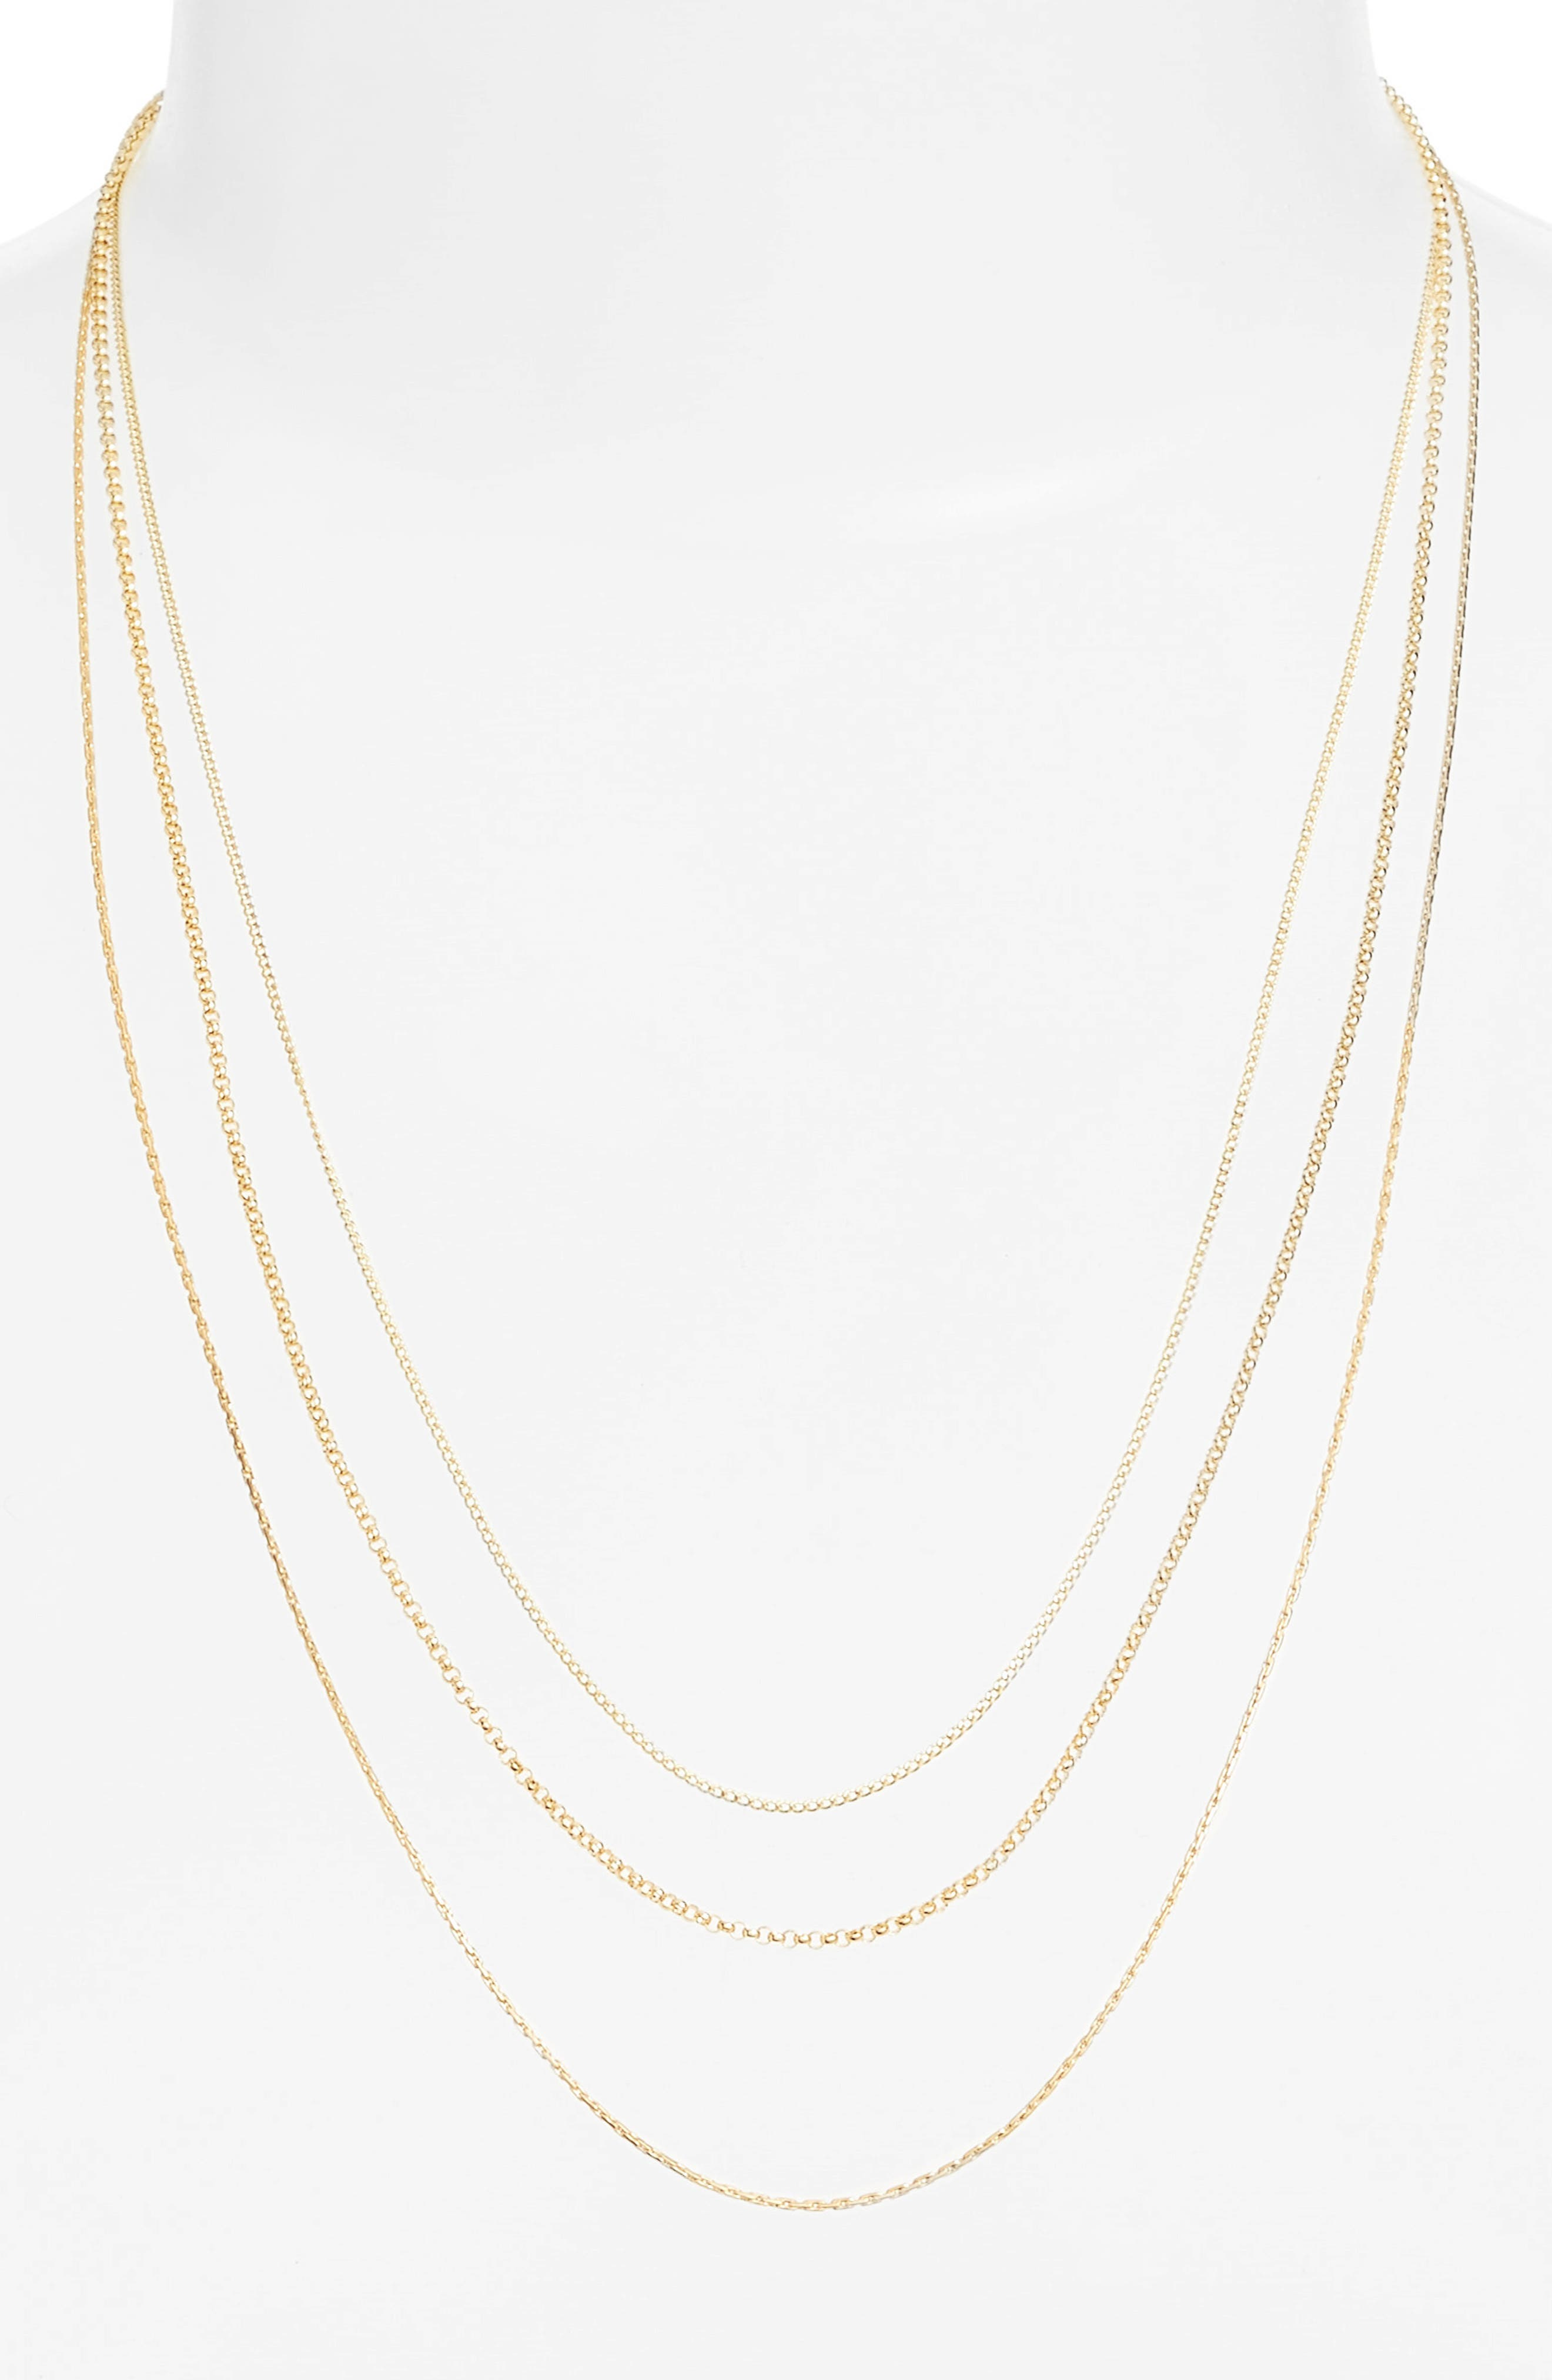 Multistrand Chain Necklace,                             Alternate thumbnail 2, color,